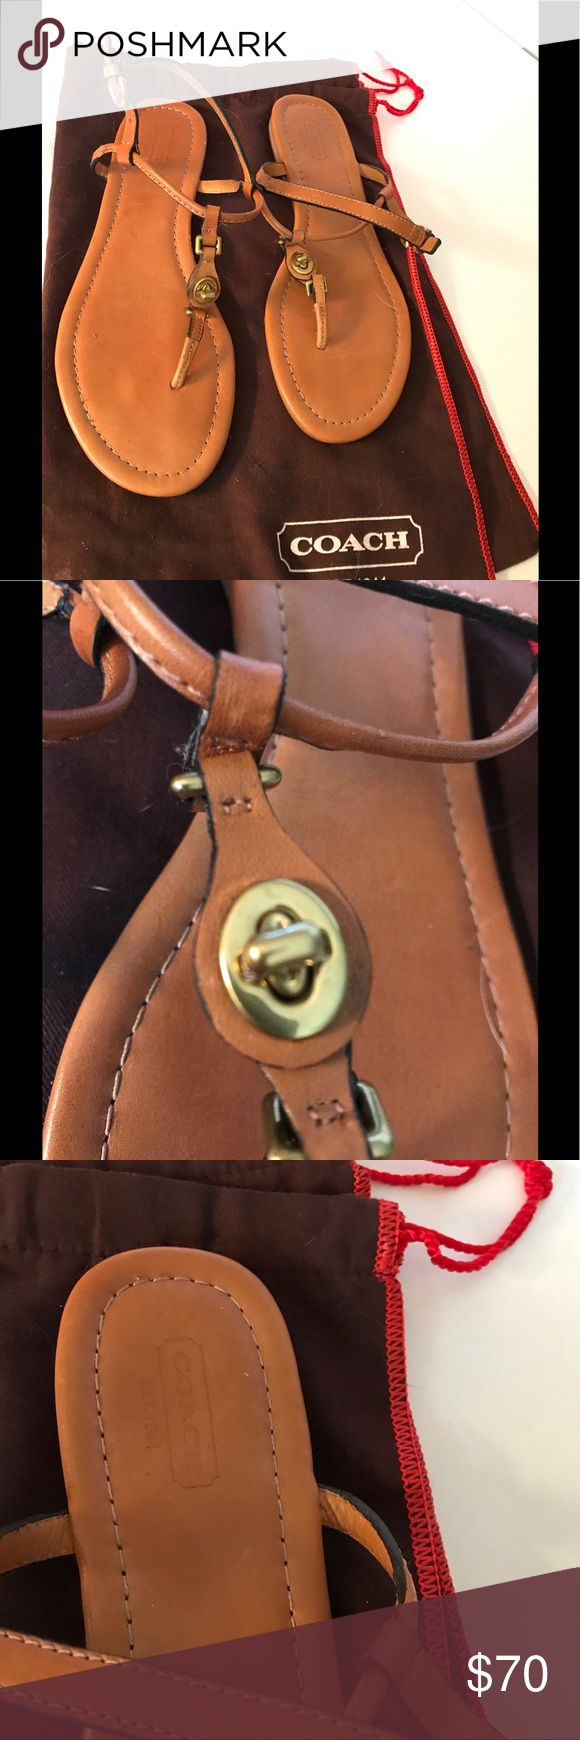 Coach Tan Saddle Leather Sandals Twist Clasp 8.5 Coach Tan Saddle Leather Sandals Gold Twist Clasp Front sz 8.5               Coach tan leather sling back T Strap Thong Leather Sandals. Very nice hand sewn leather sandals in Coach signature saddle color (camel brown). Never been worn in perfect condition. New without box or original packaging. Gold hardware – ankle strap buckle & functioning twist buckle across top. Very high end leather. In perfect condition. Black leather lining straps…